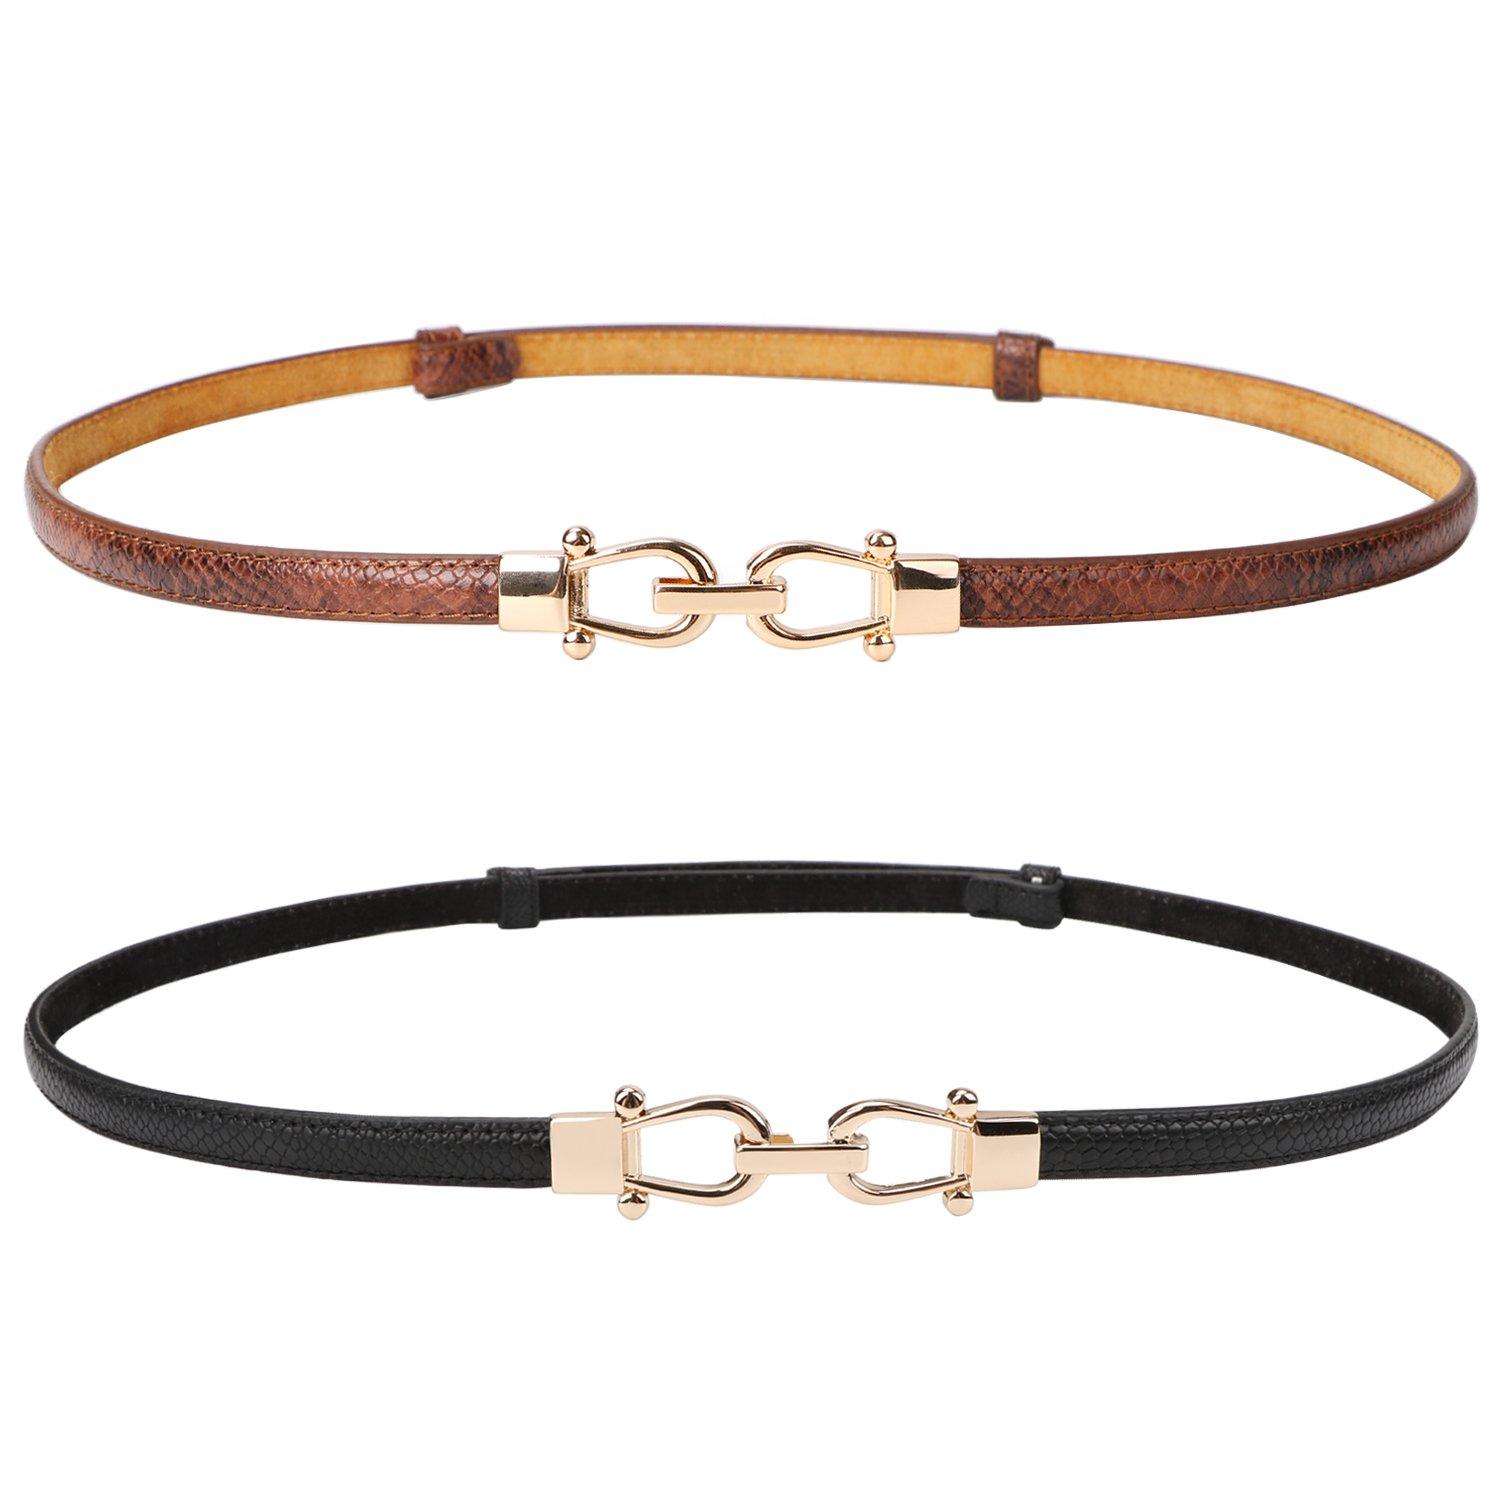 Leather Skinny Women Belt Thin Waist Belts for Dresses Up to 37''with Interlocking Buckle 2 Pack